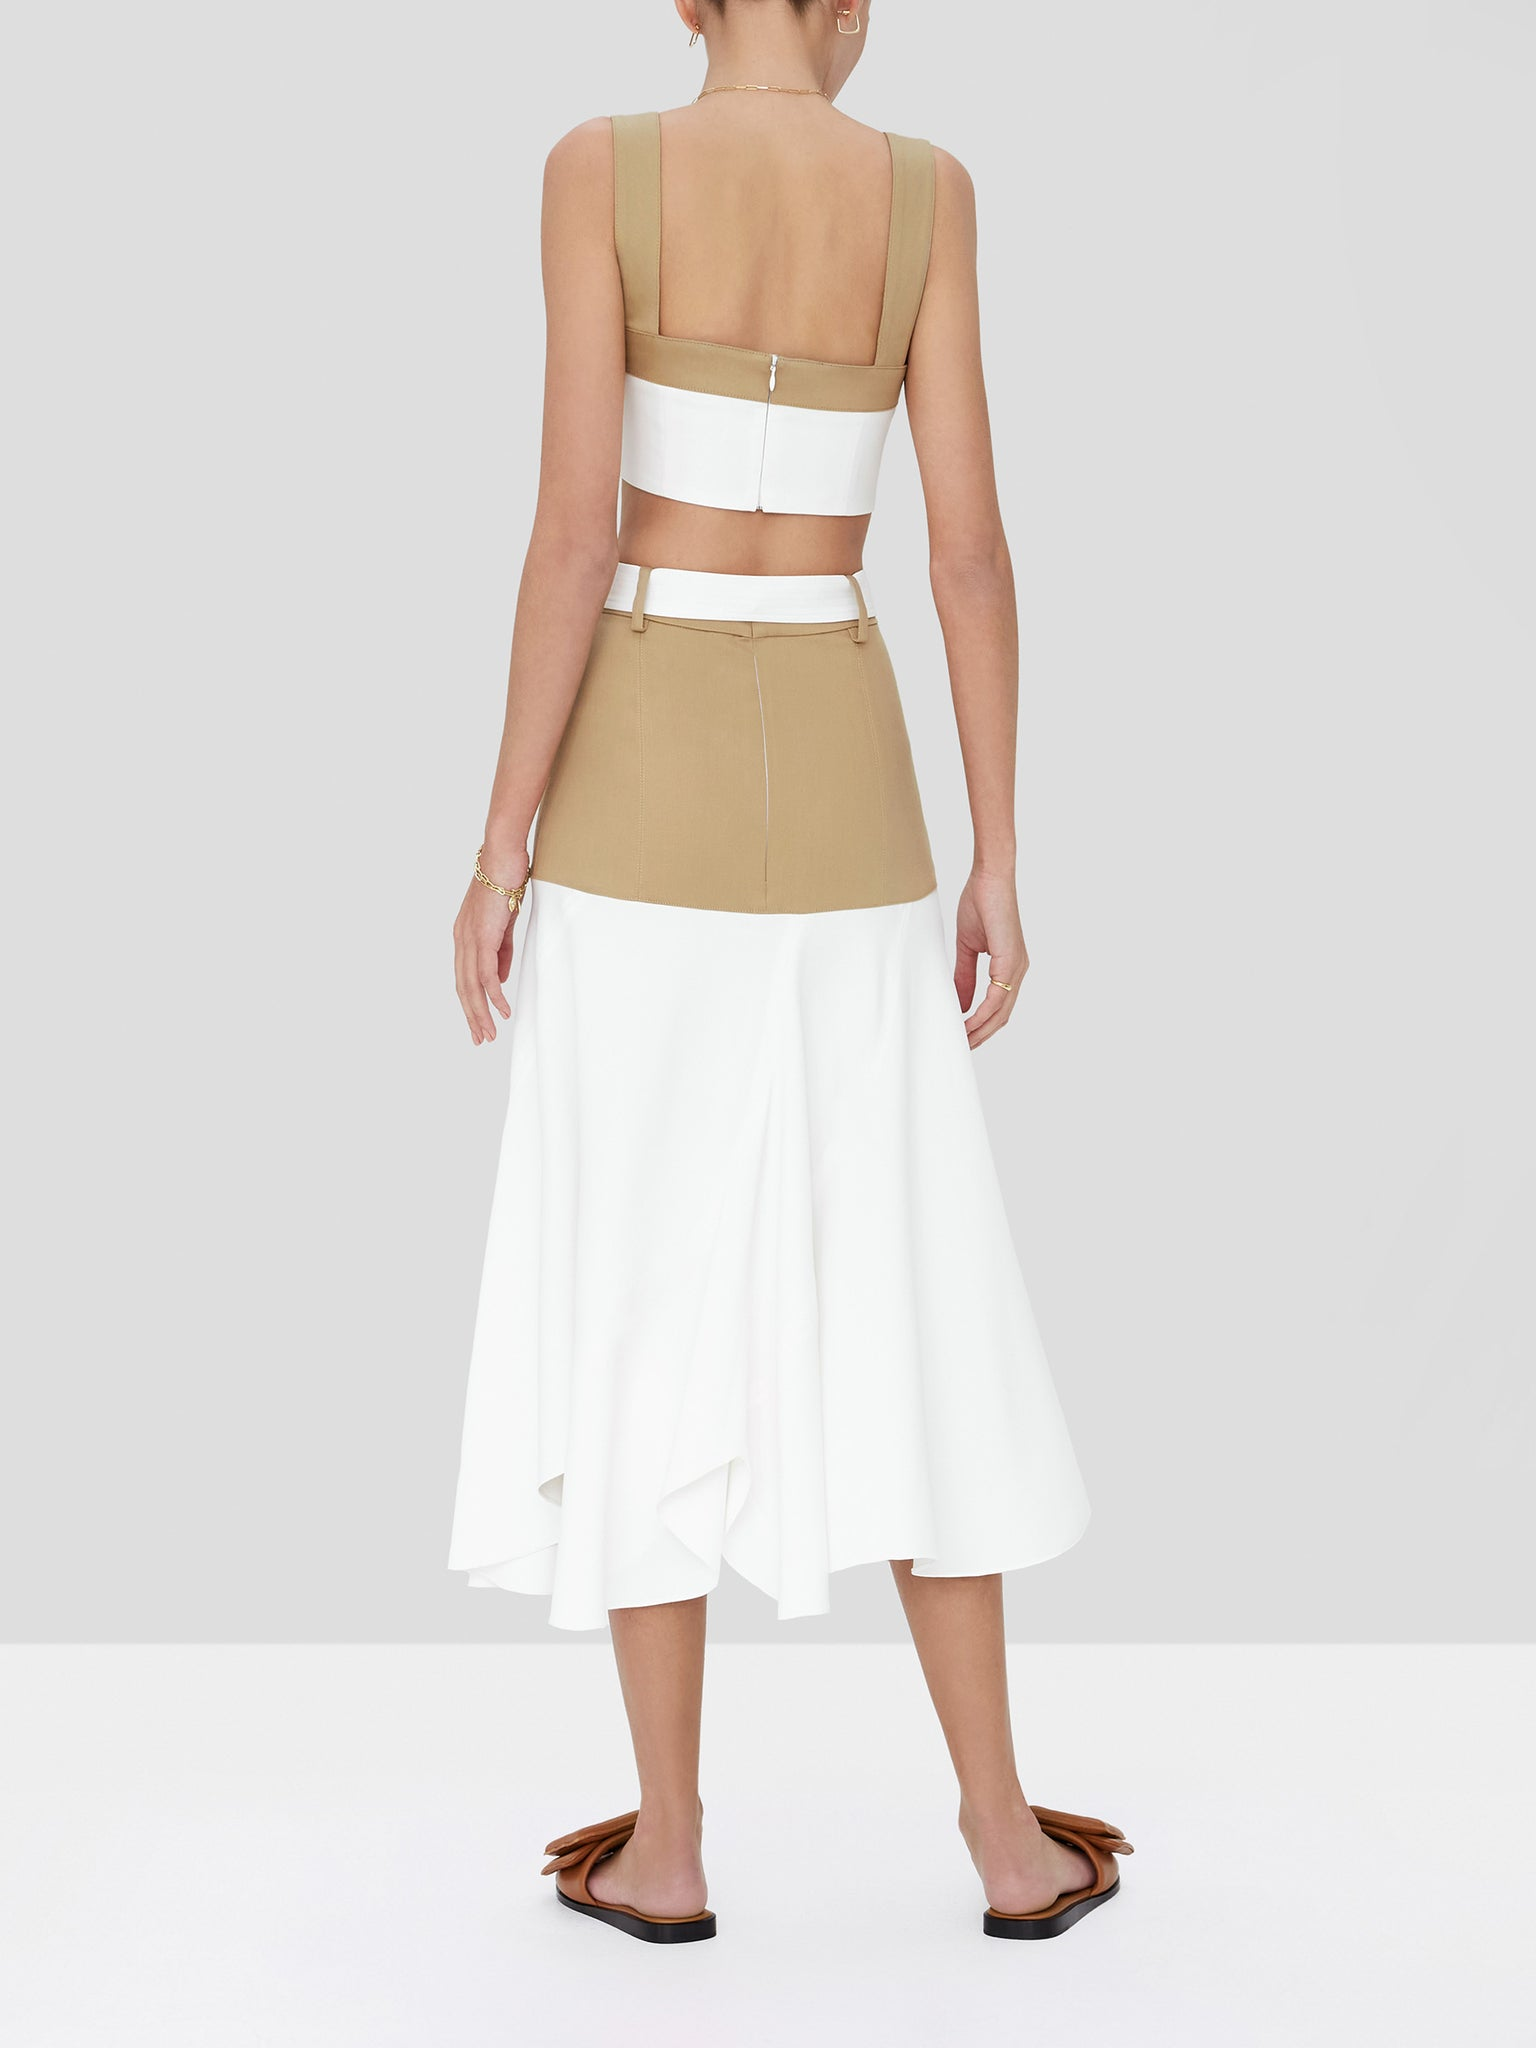 rua crop top in tan/white - Rear View